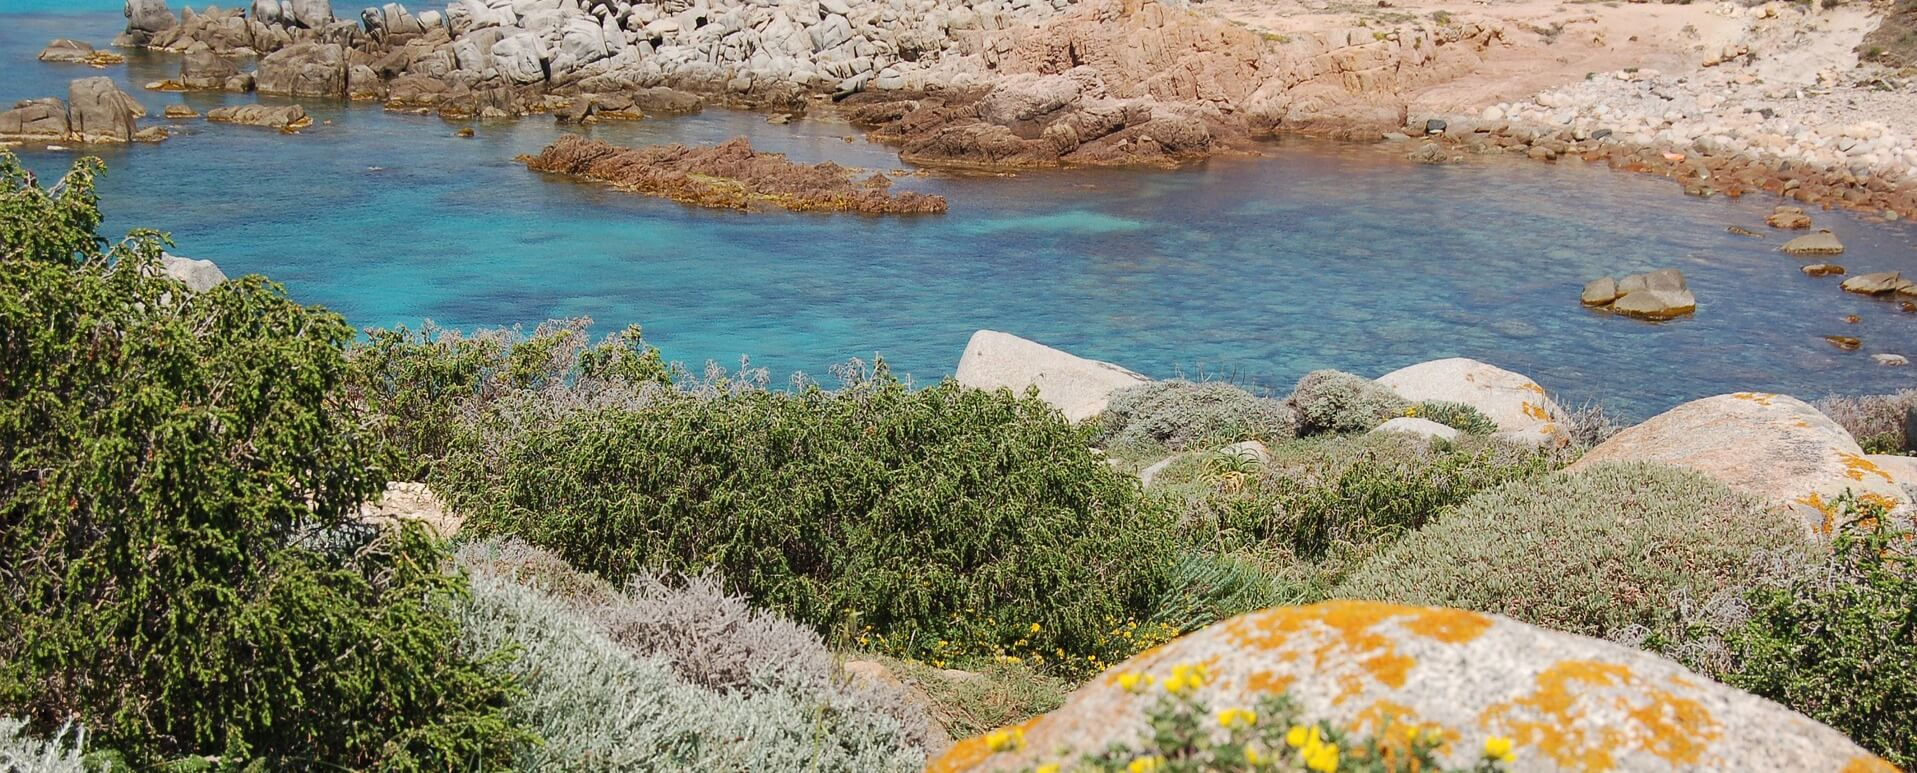 Agriates and beaches - Corsica